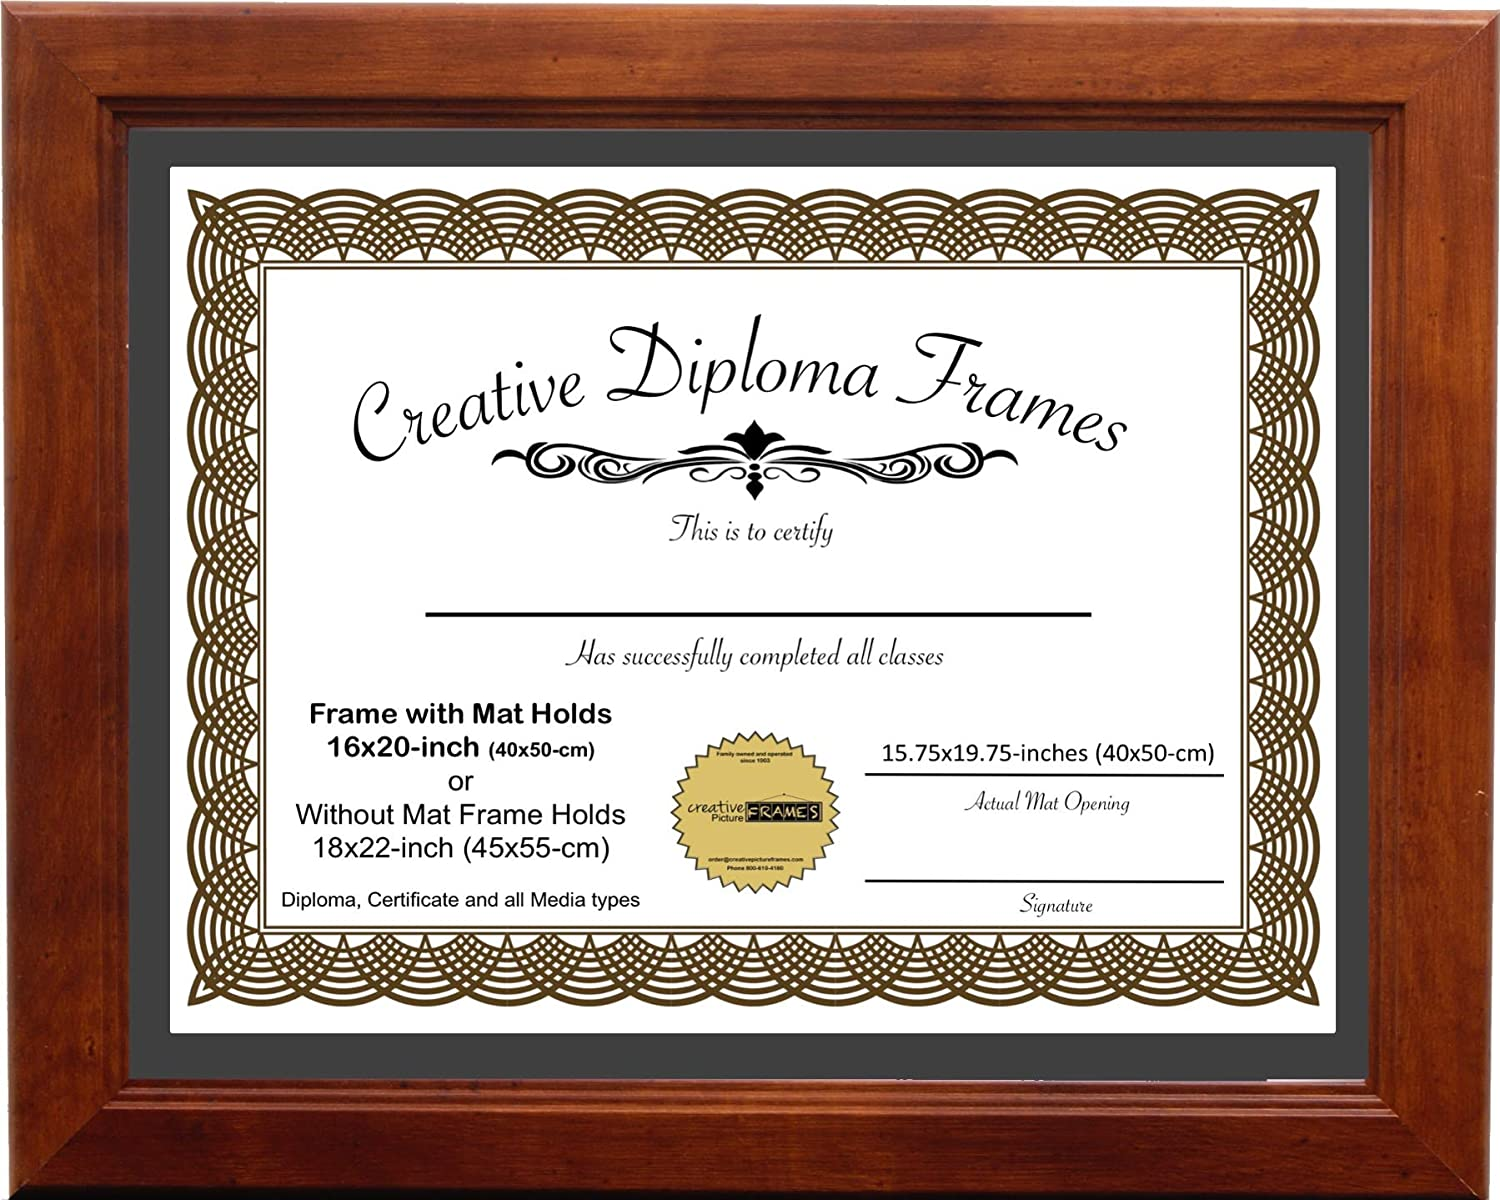 Creative Picture Frames 16x20 Walnut Finish Diploma Frame with Black Mat UV Resistant Acrylic Face and Installed Wall Hangers| Frame Holds 16x20-inch Media Without Mat